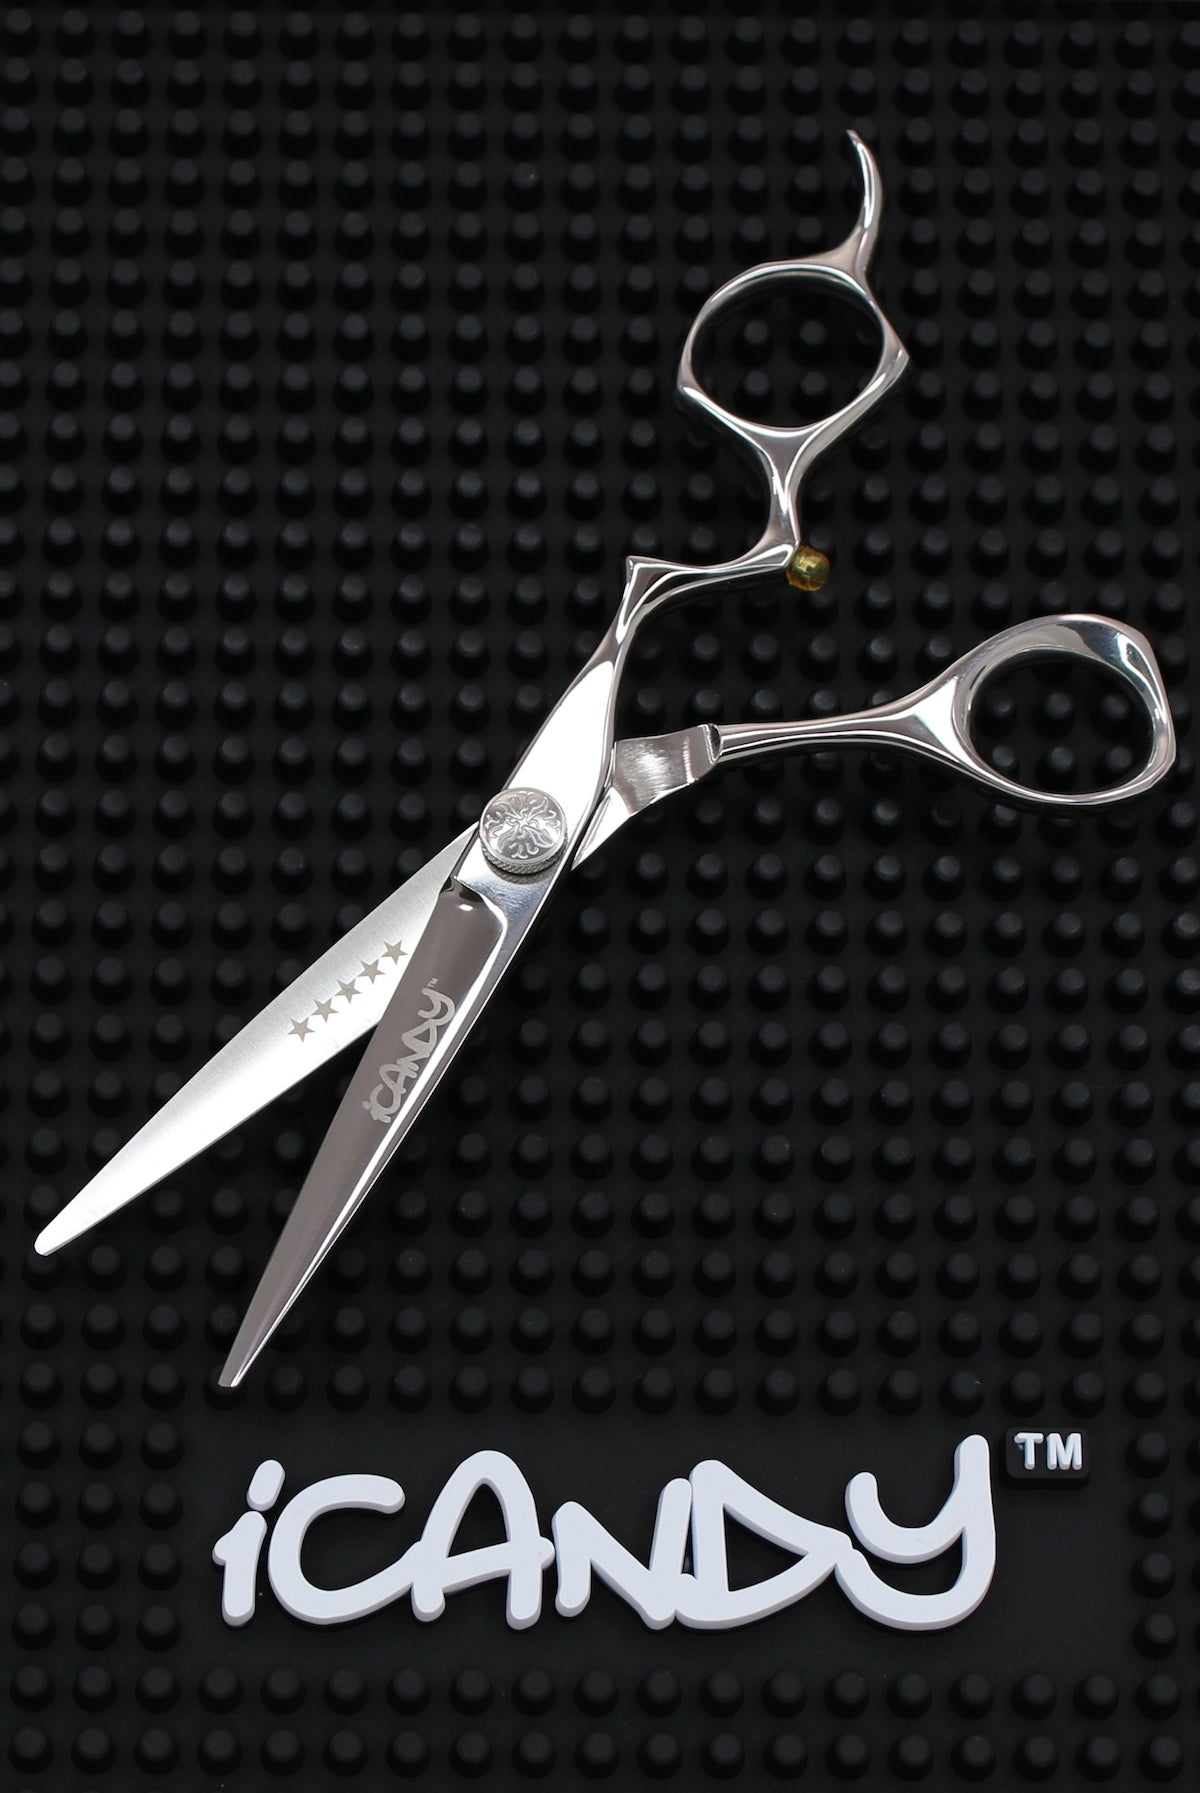 iCandy Athena-Scissor-Athena-CT Thinning Scissors Bundle (6 inch) - iCandy Scissors